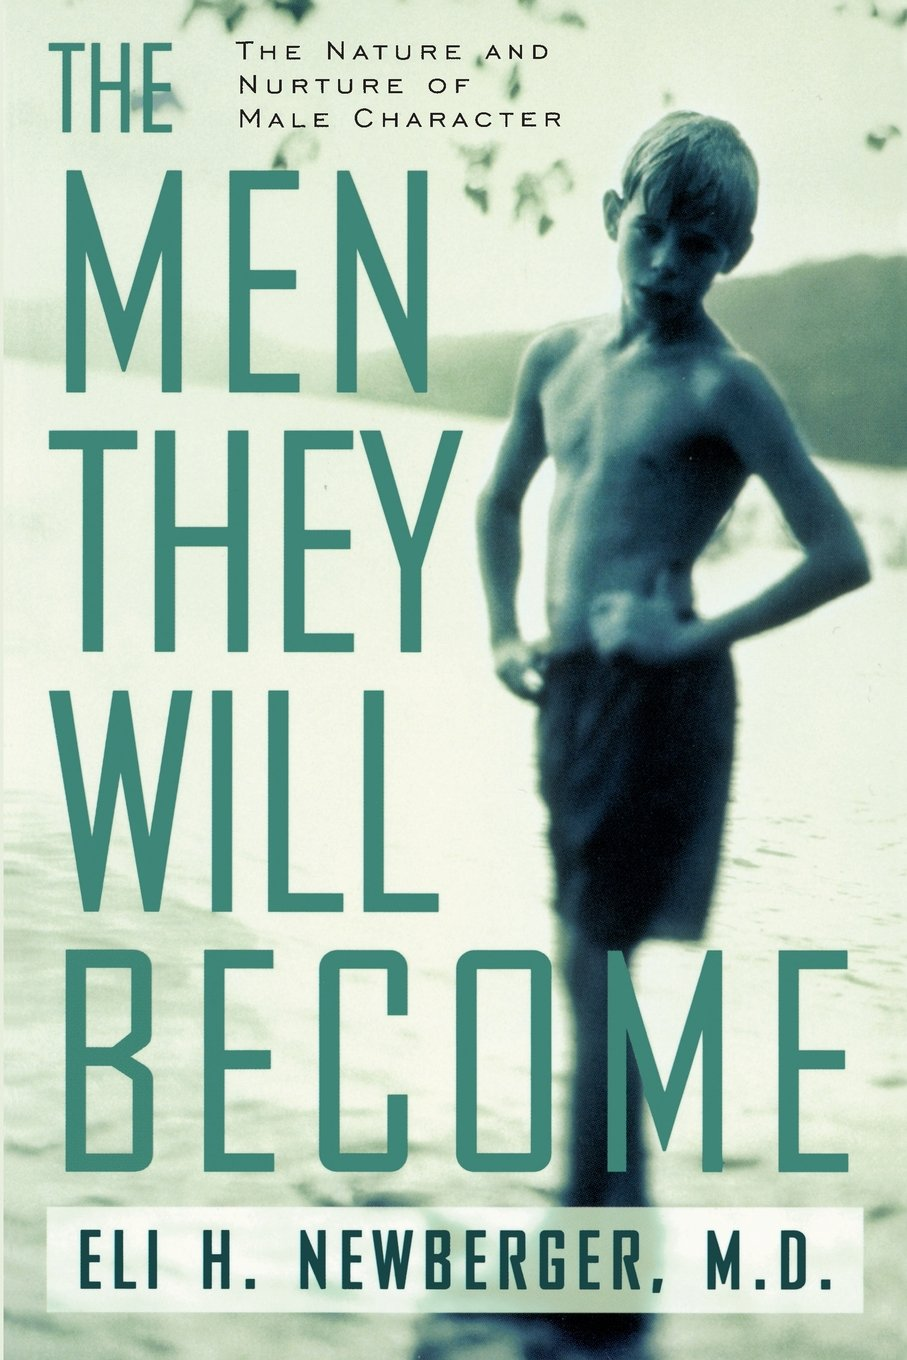 The men they will become the nature and nurture of male character the men they will become the nature and nurture of male character eli newberger eli newberber eli h newberger 9780738203638 amazon books fandeluxe Choice Image